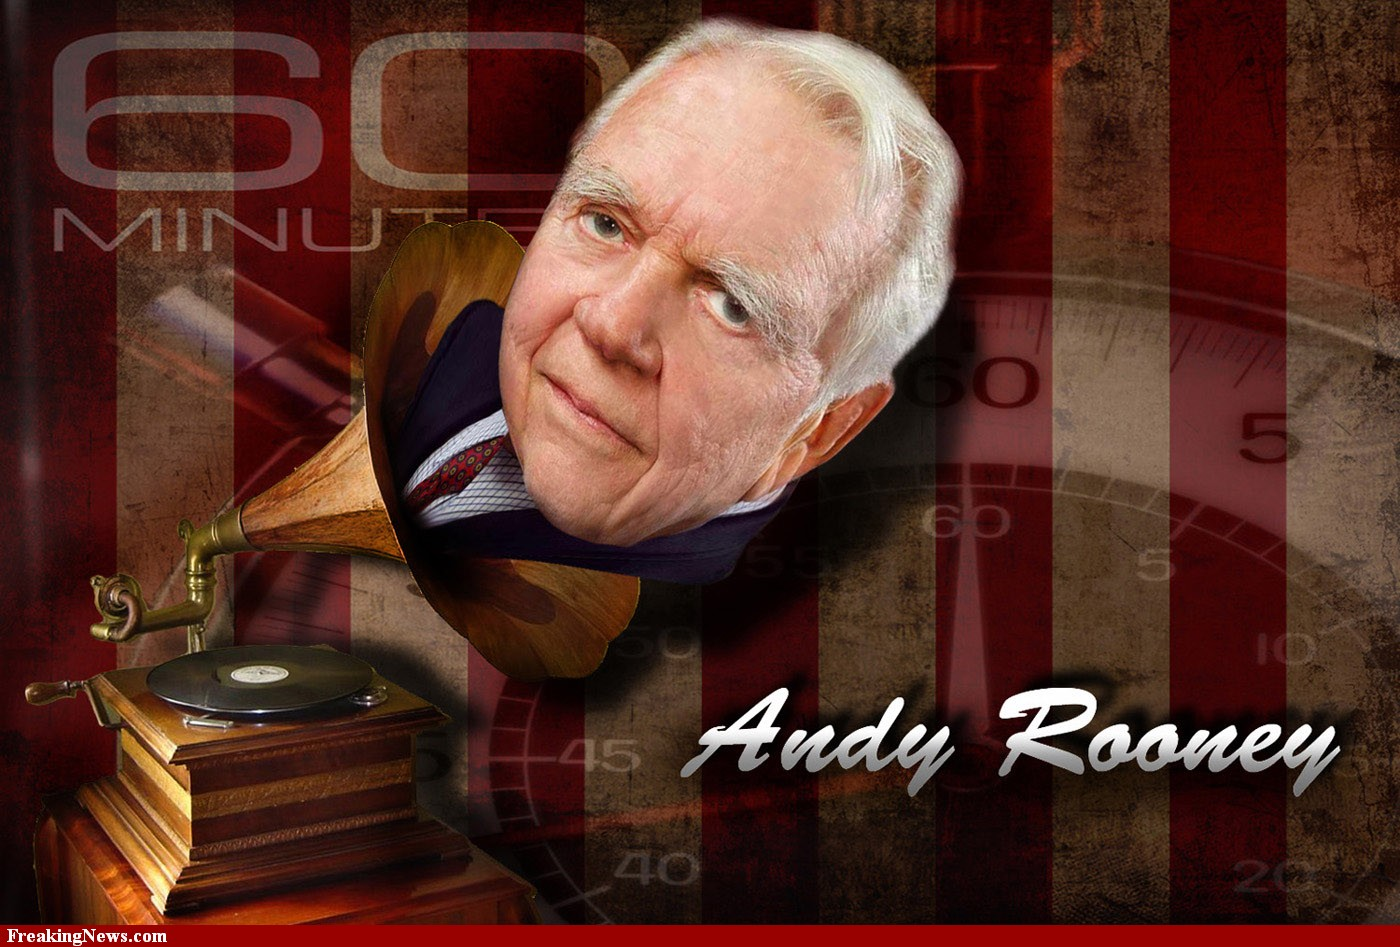 andy rooney essay older women Former '60 minutes' commentator andy rooney dies but he was just as likely to use his weekly television essay to discuss the old clothes in his chairs and women.